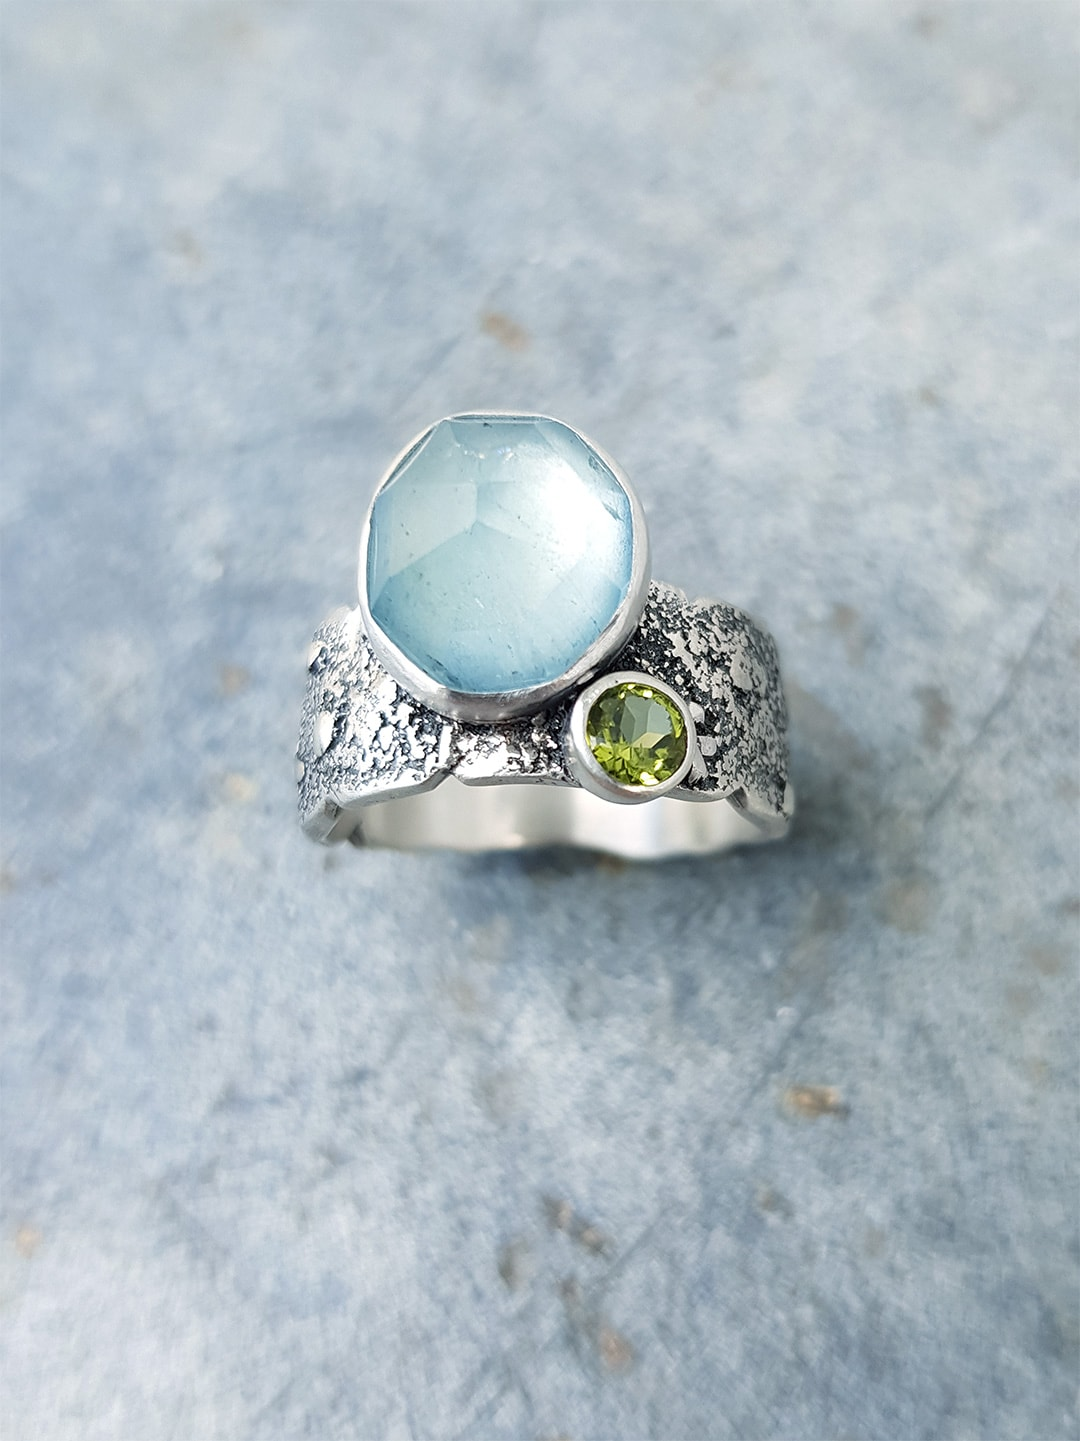 Textured silver ring with aquamarine and peridot